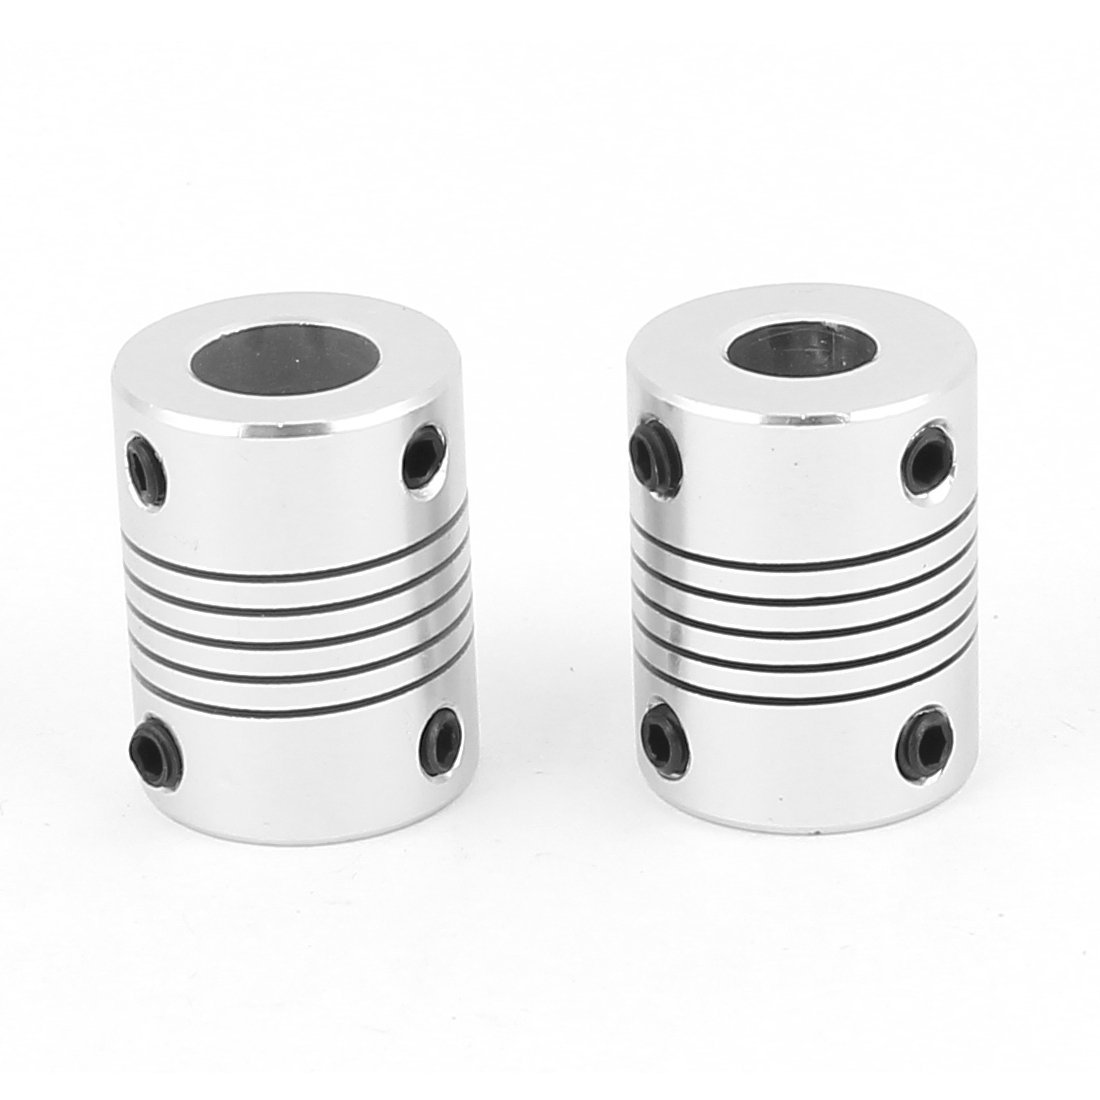 uxcell Motor Shaft 5mm to 5mm Joint Helical Beam Coupler Coupling 20mm Dia 25mm Length Silver